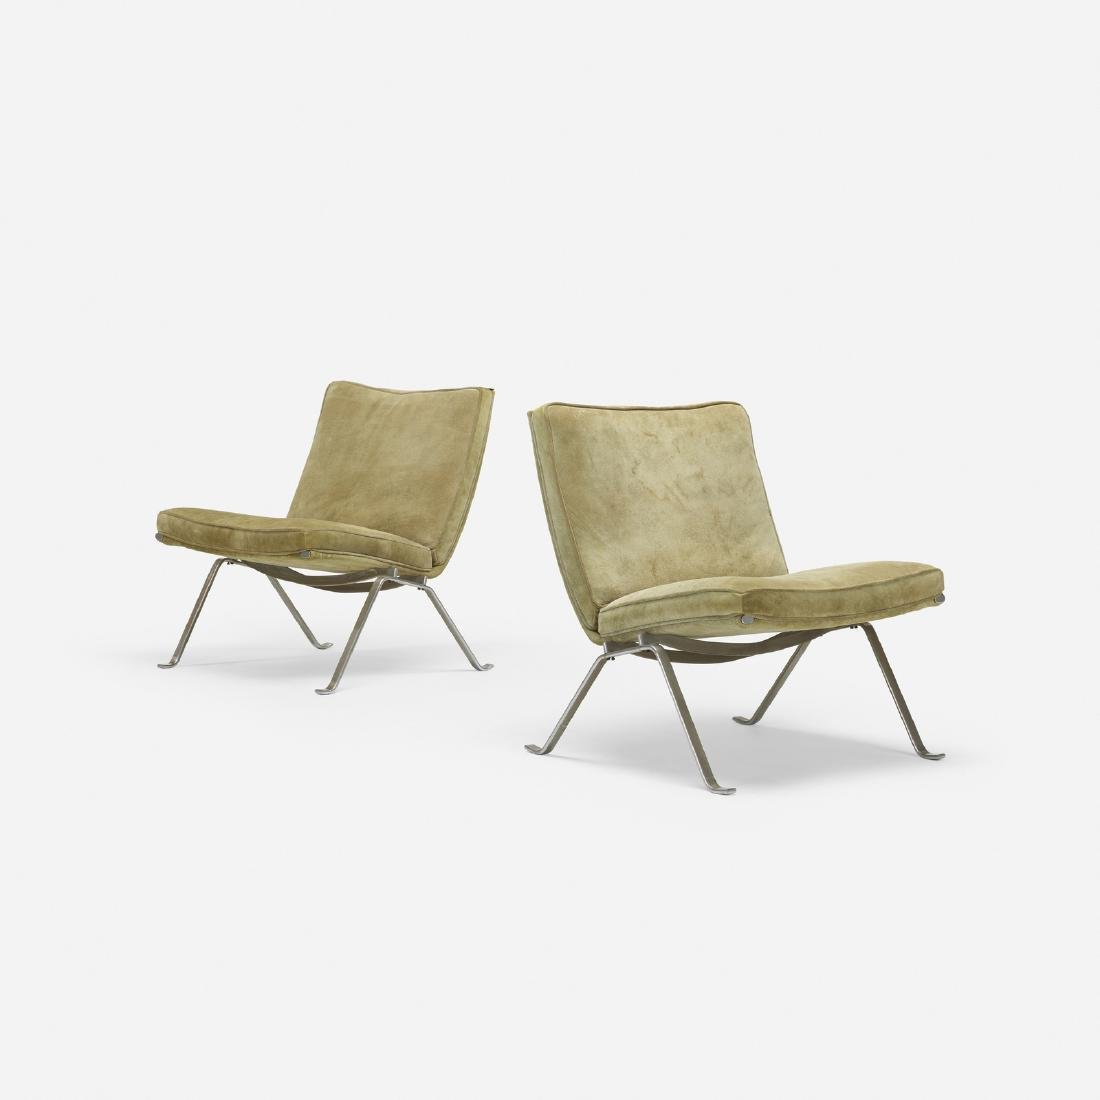 Poul Kjaerholm, PK 22 lounge chairs, pair - 2